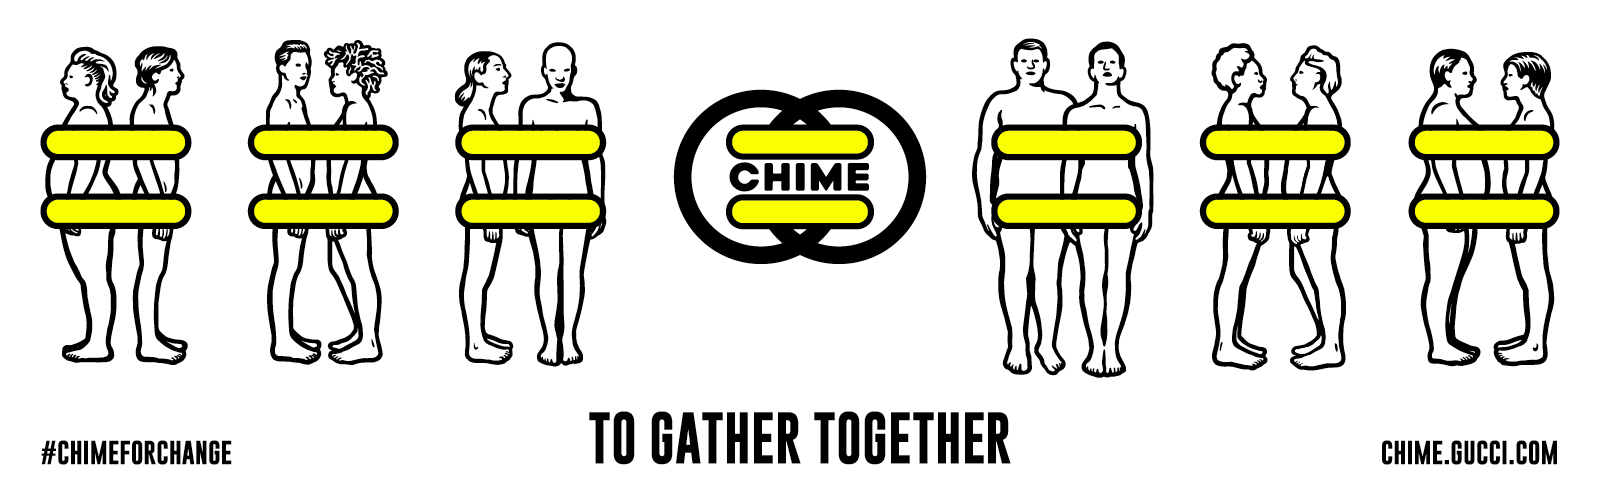 GlobalGiving - CHIME